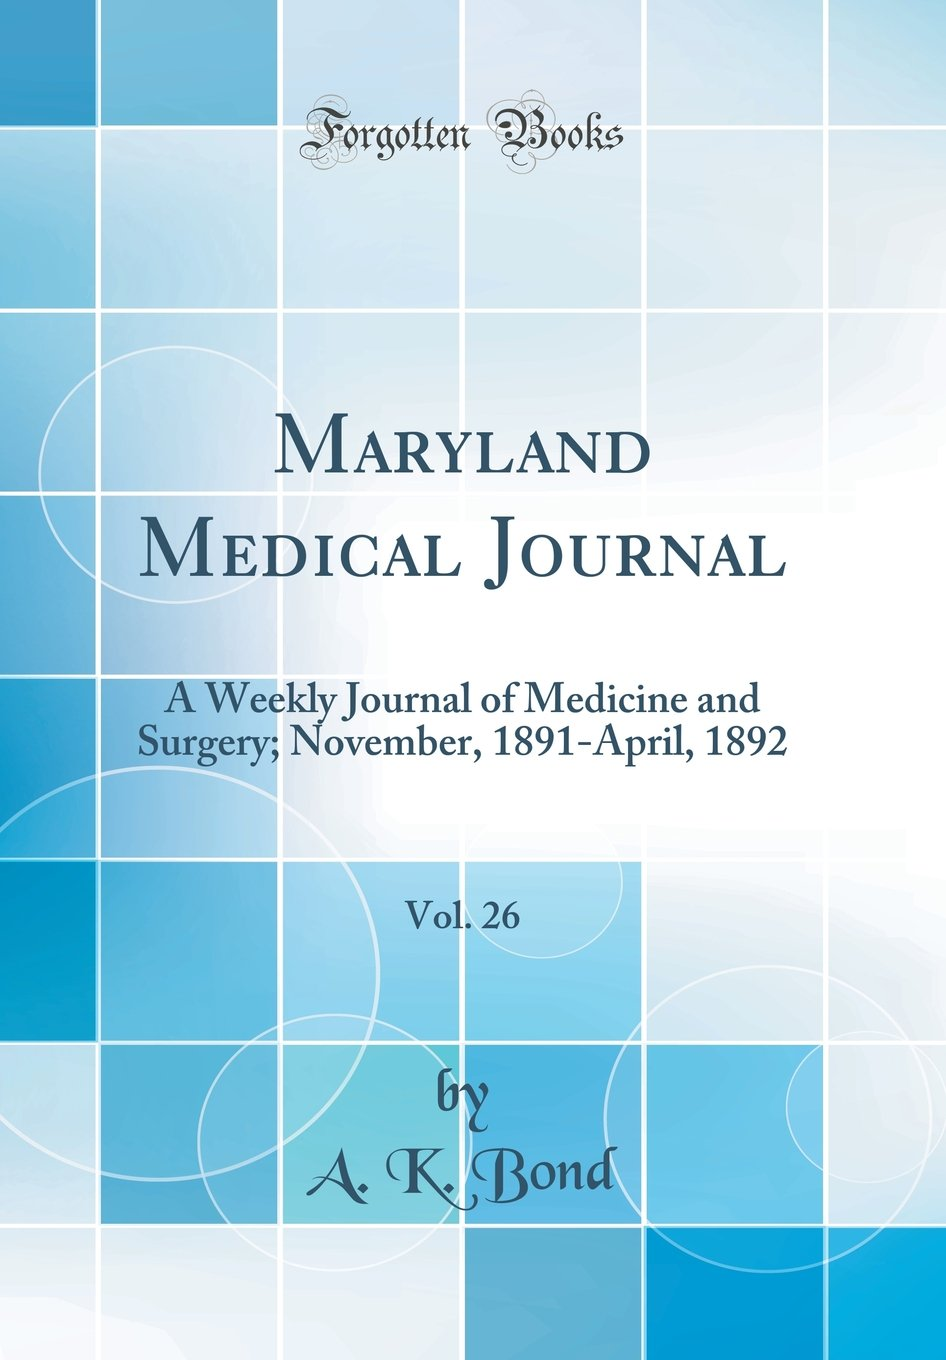 Maryland Medical Journal, Vol. 26: A Weekly Journal of Medicine and Surgery; November, 1891-April, 1892 (Classic Reprint) pdf